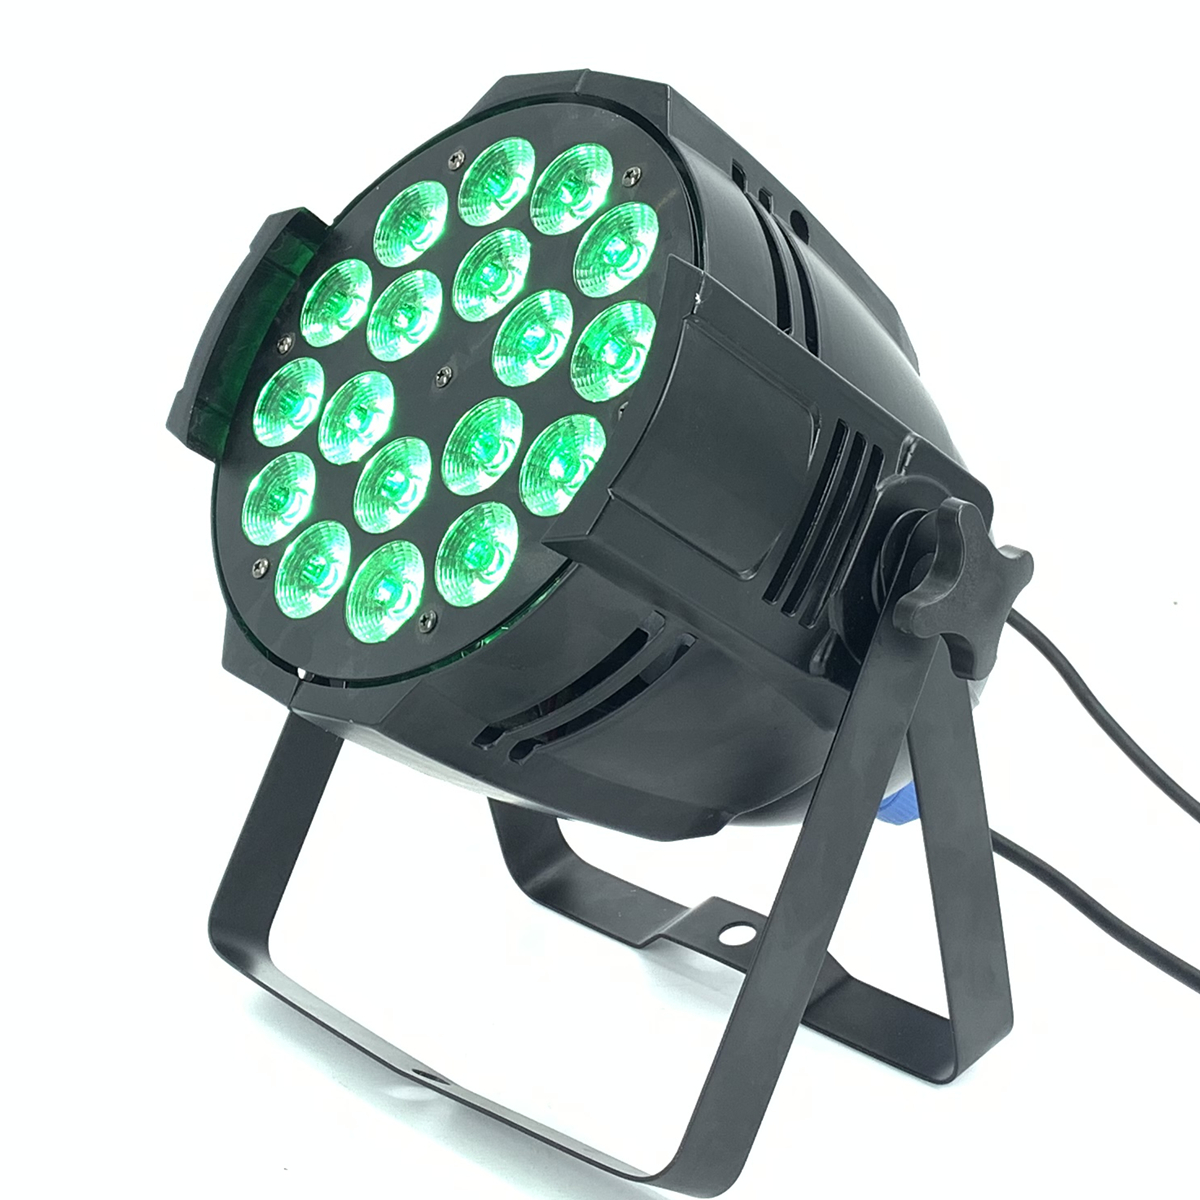 RGBWA UV 6IN1 18X18W LED Par light Cans Aluminum  disco light dj light led wash beam light